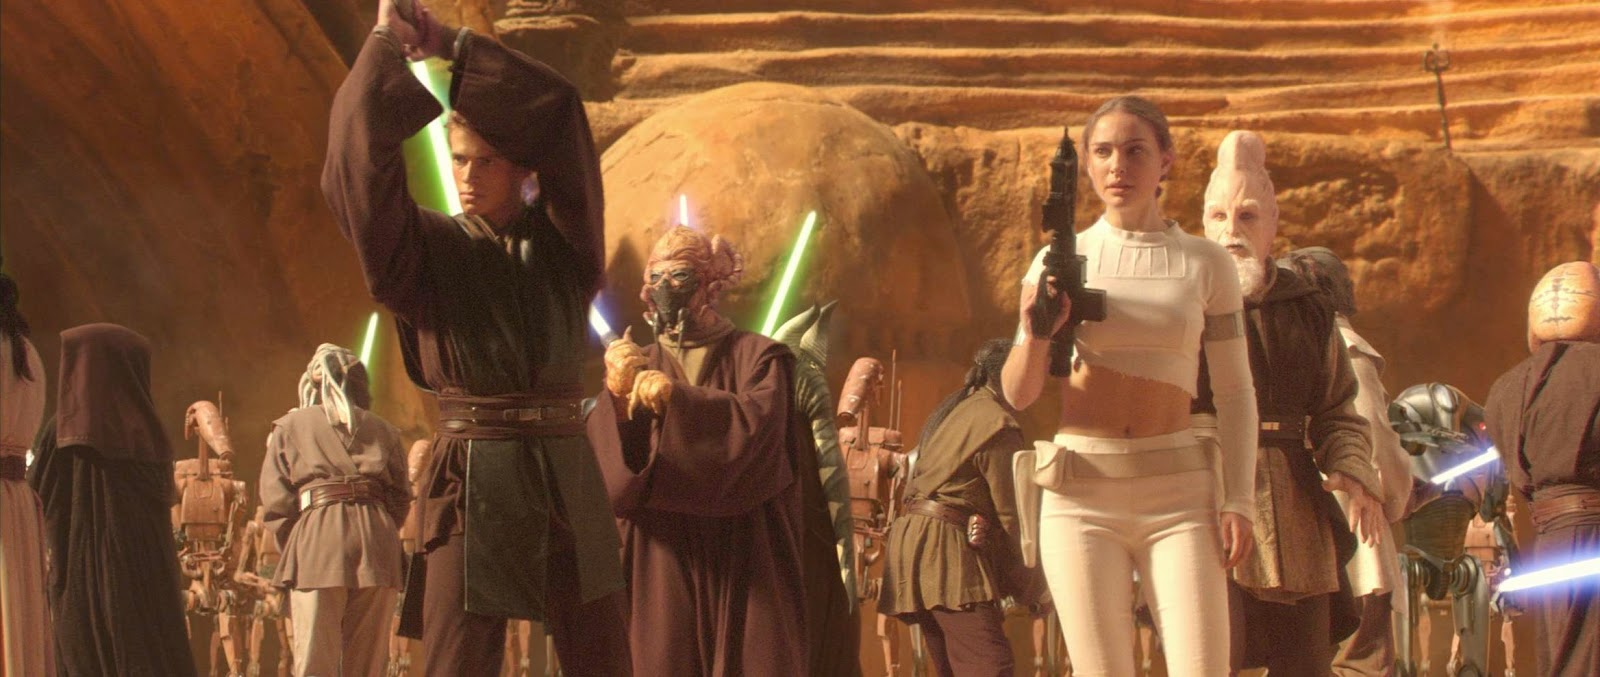 STAR WARS EP 2 JEDI ANAKIN AND PADME.jpg